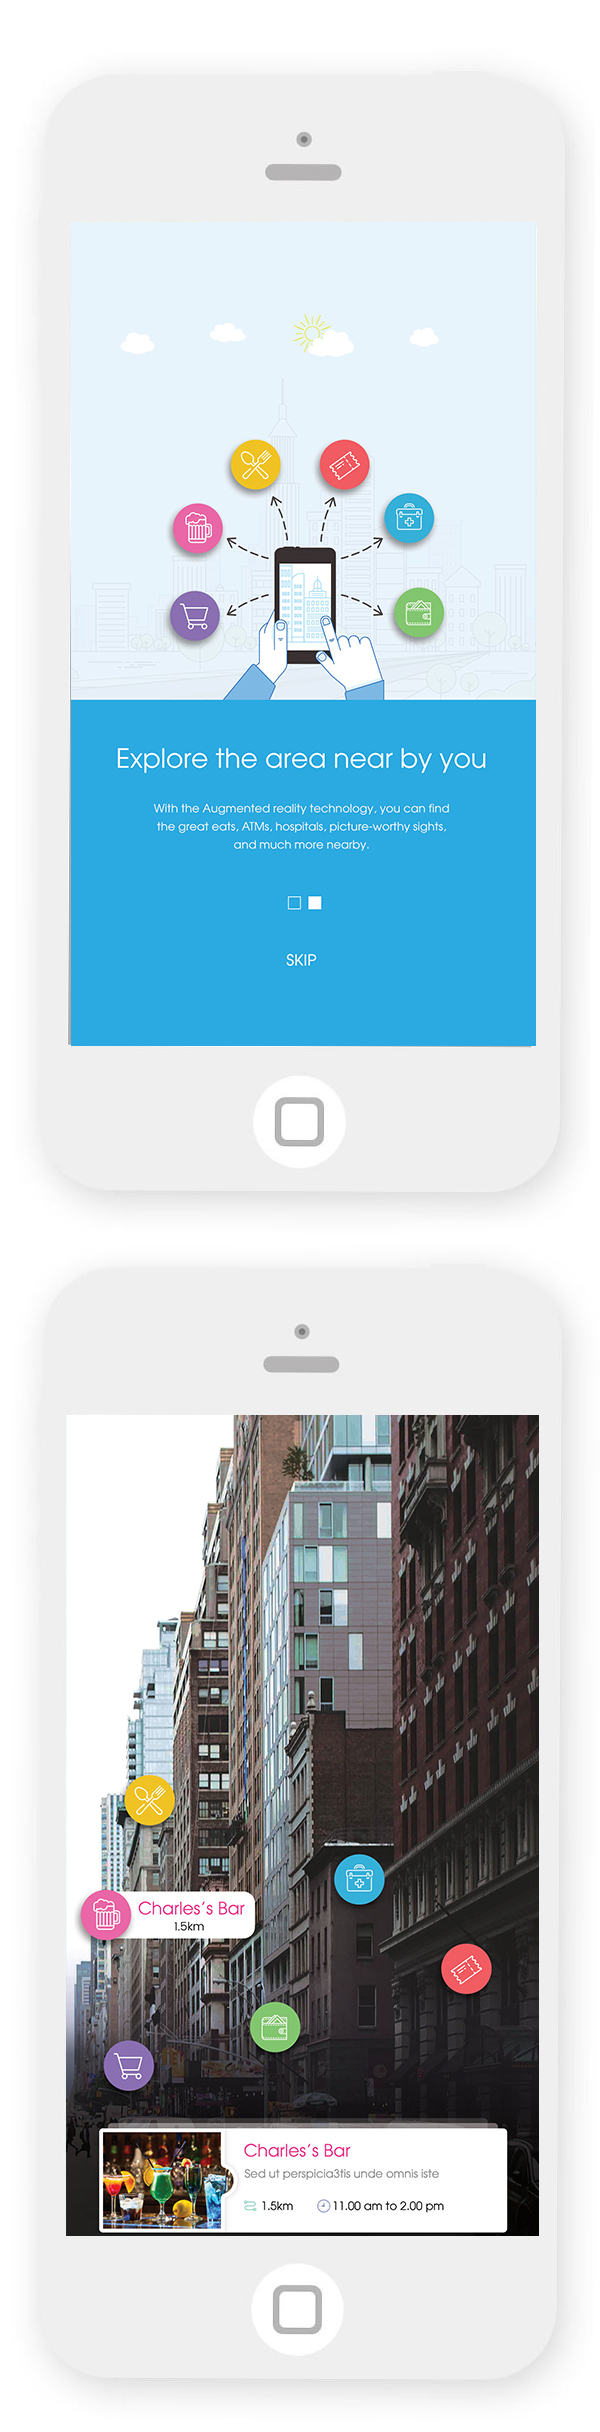 Modern Mobile App UI Design with Amazing User Experience - 11